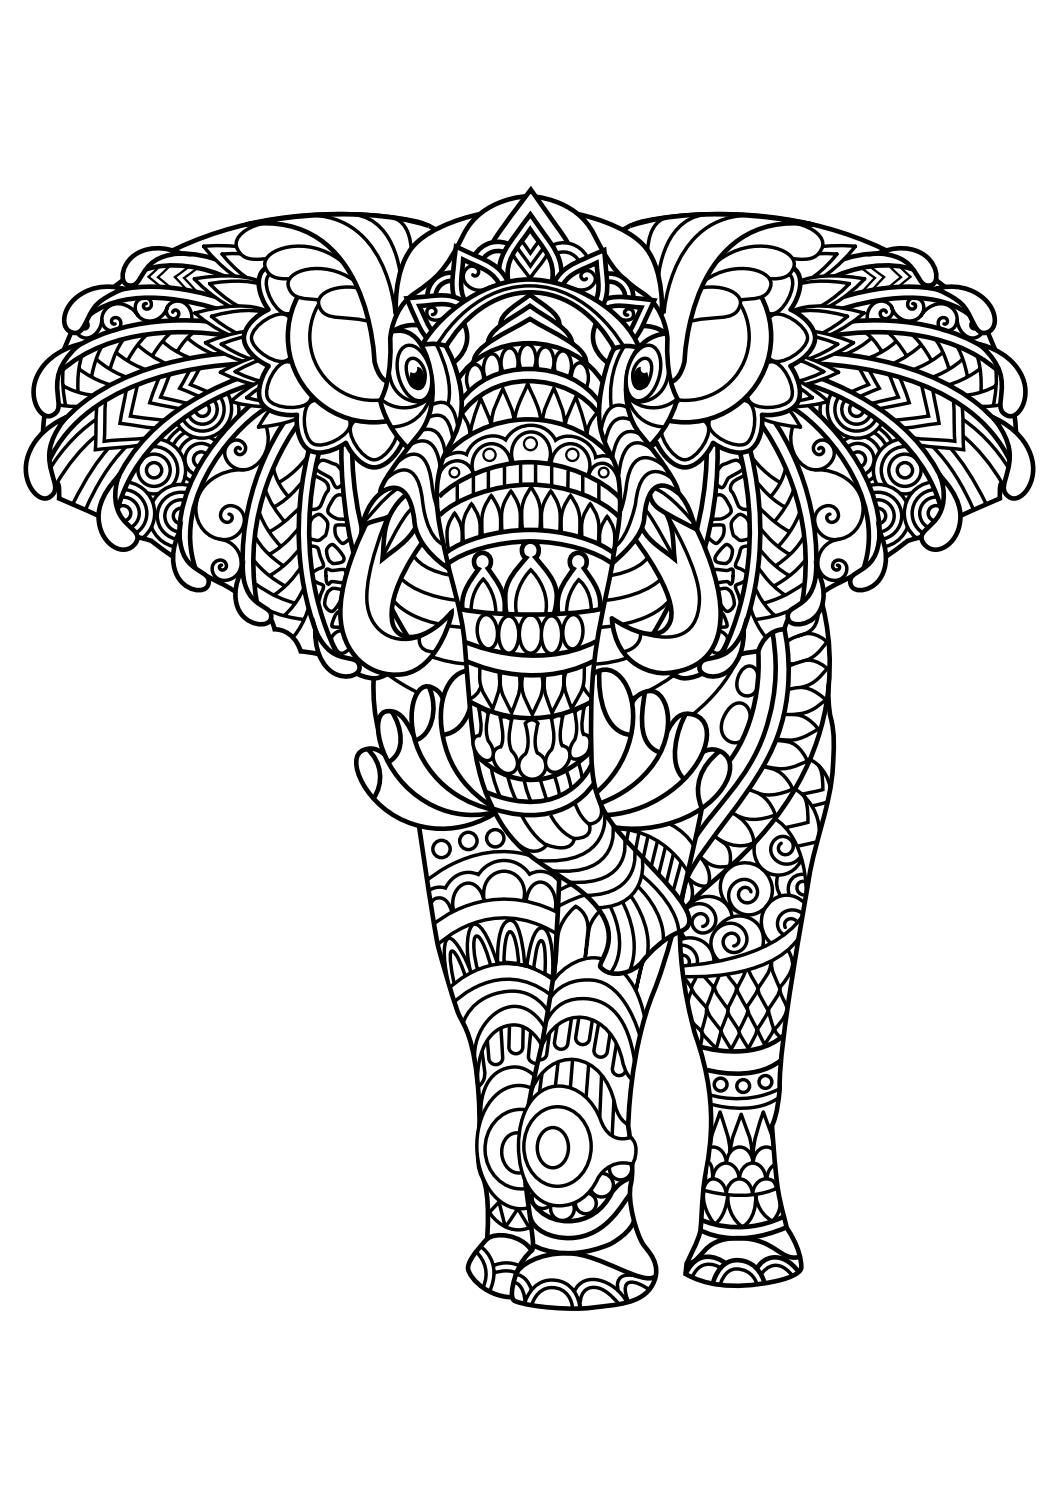 best animal colouring books animal coloring pages pdf coloring animals elephant books colouring animal best